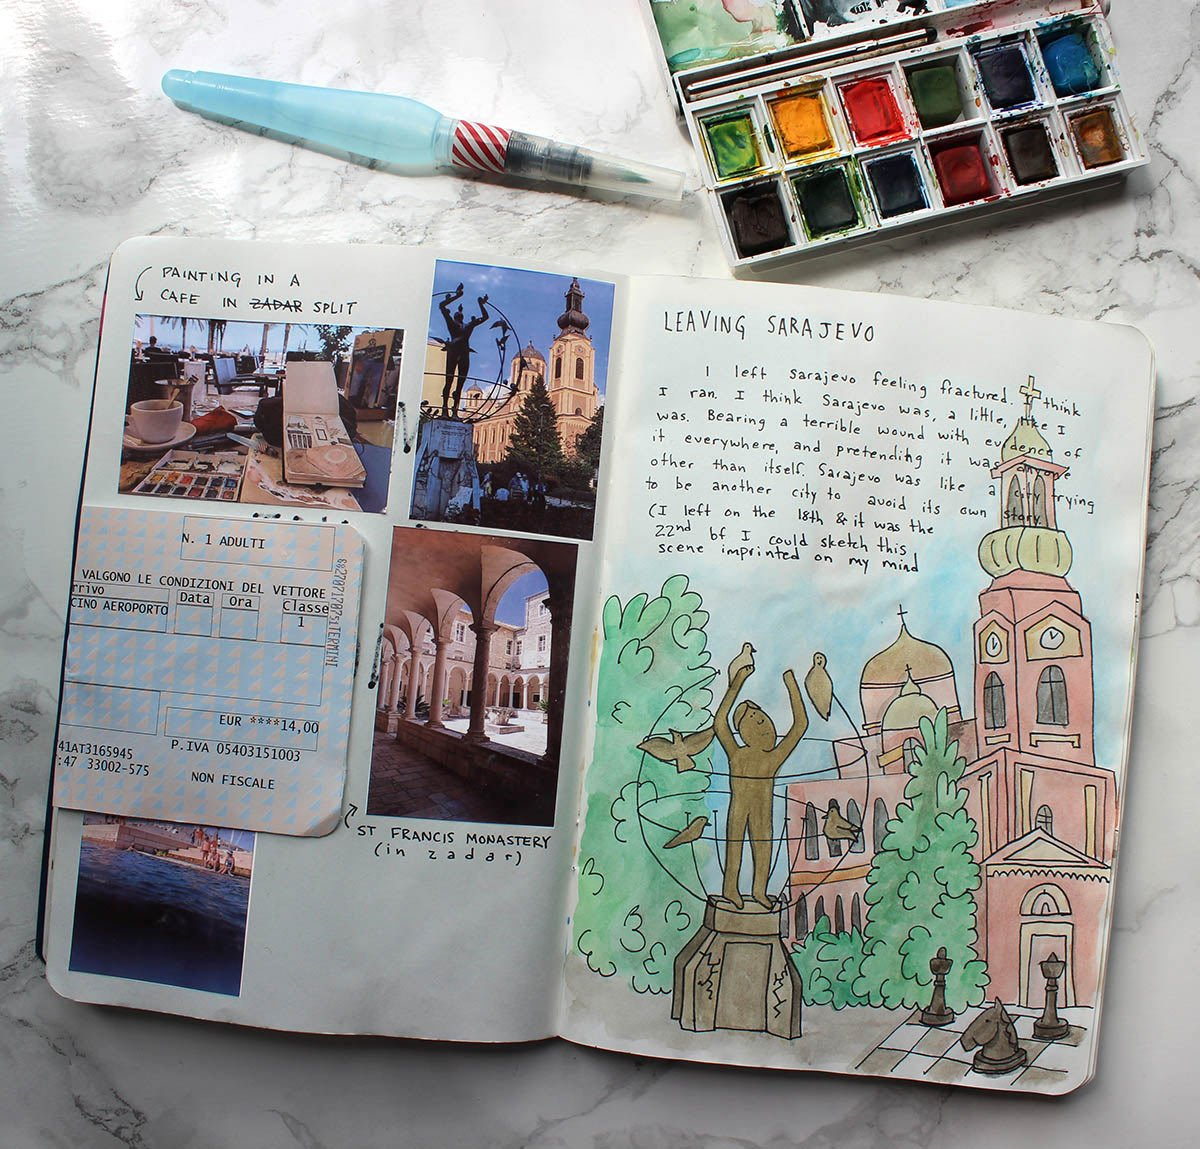 A travel journal art  page created with this kit in Sarajevo